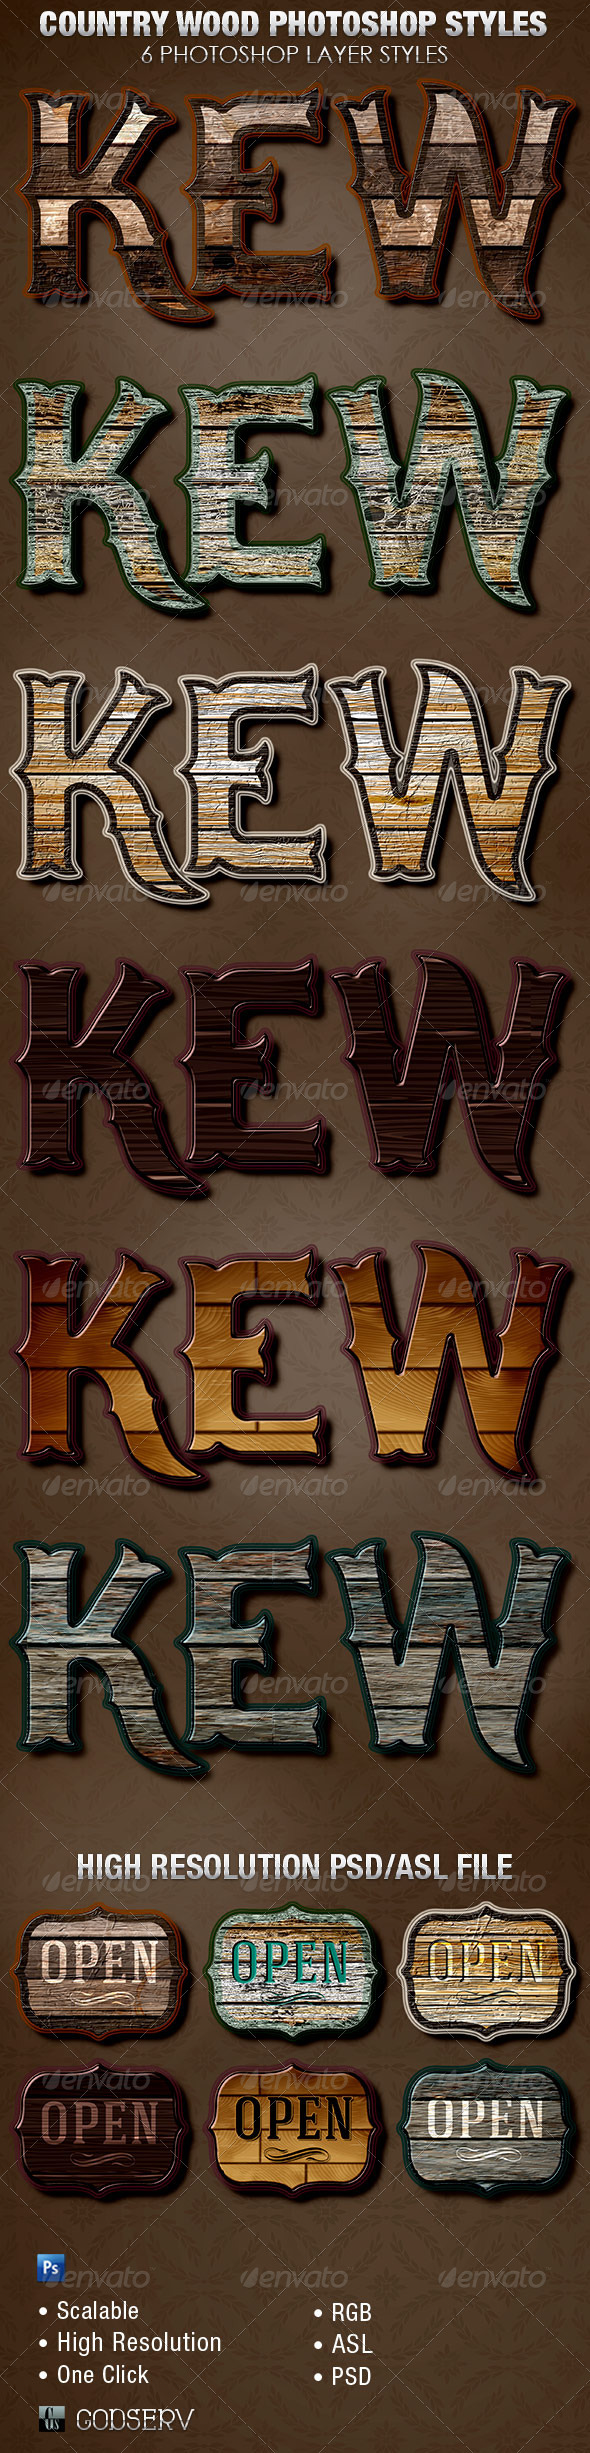 Country Wood Photoshop Layer Styles - Text Effects Styles